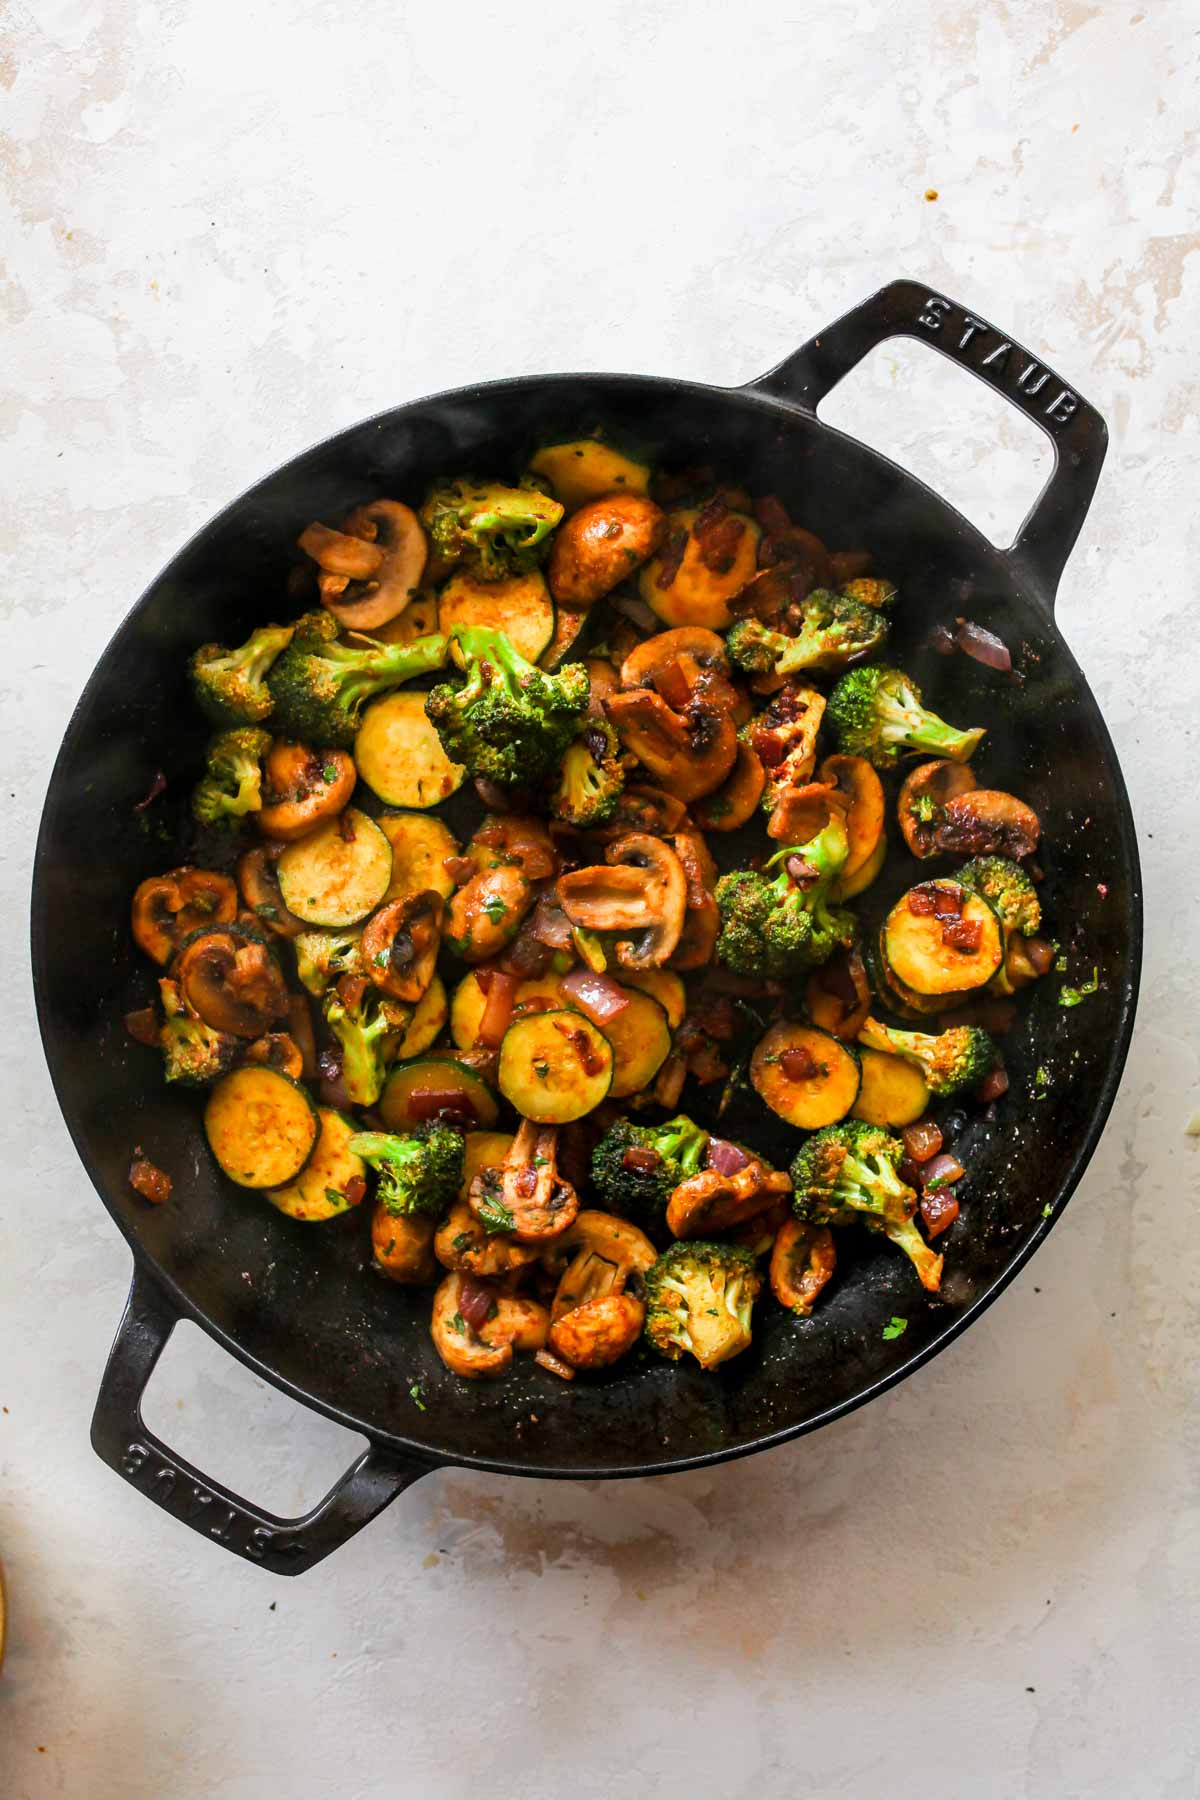 Mushrooms, broccoli, zucchini, and red onion sautéing in a skillet